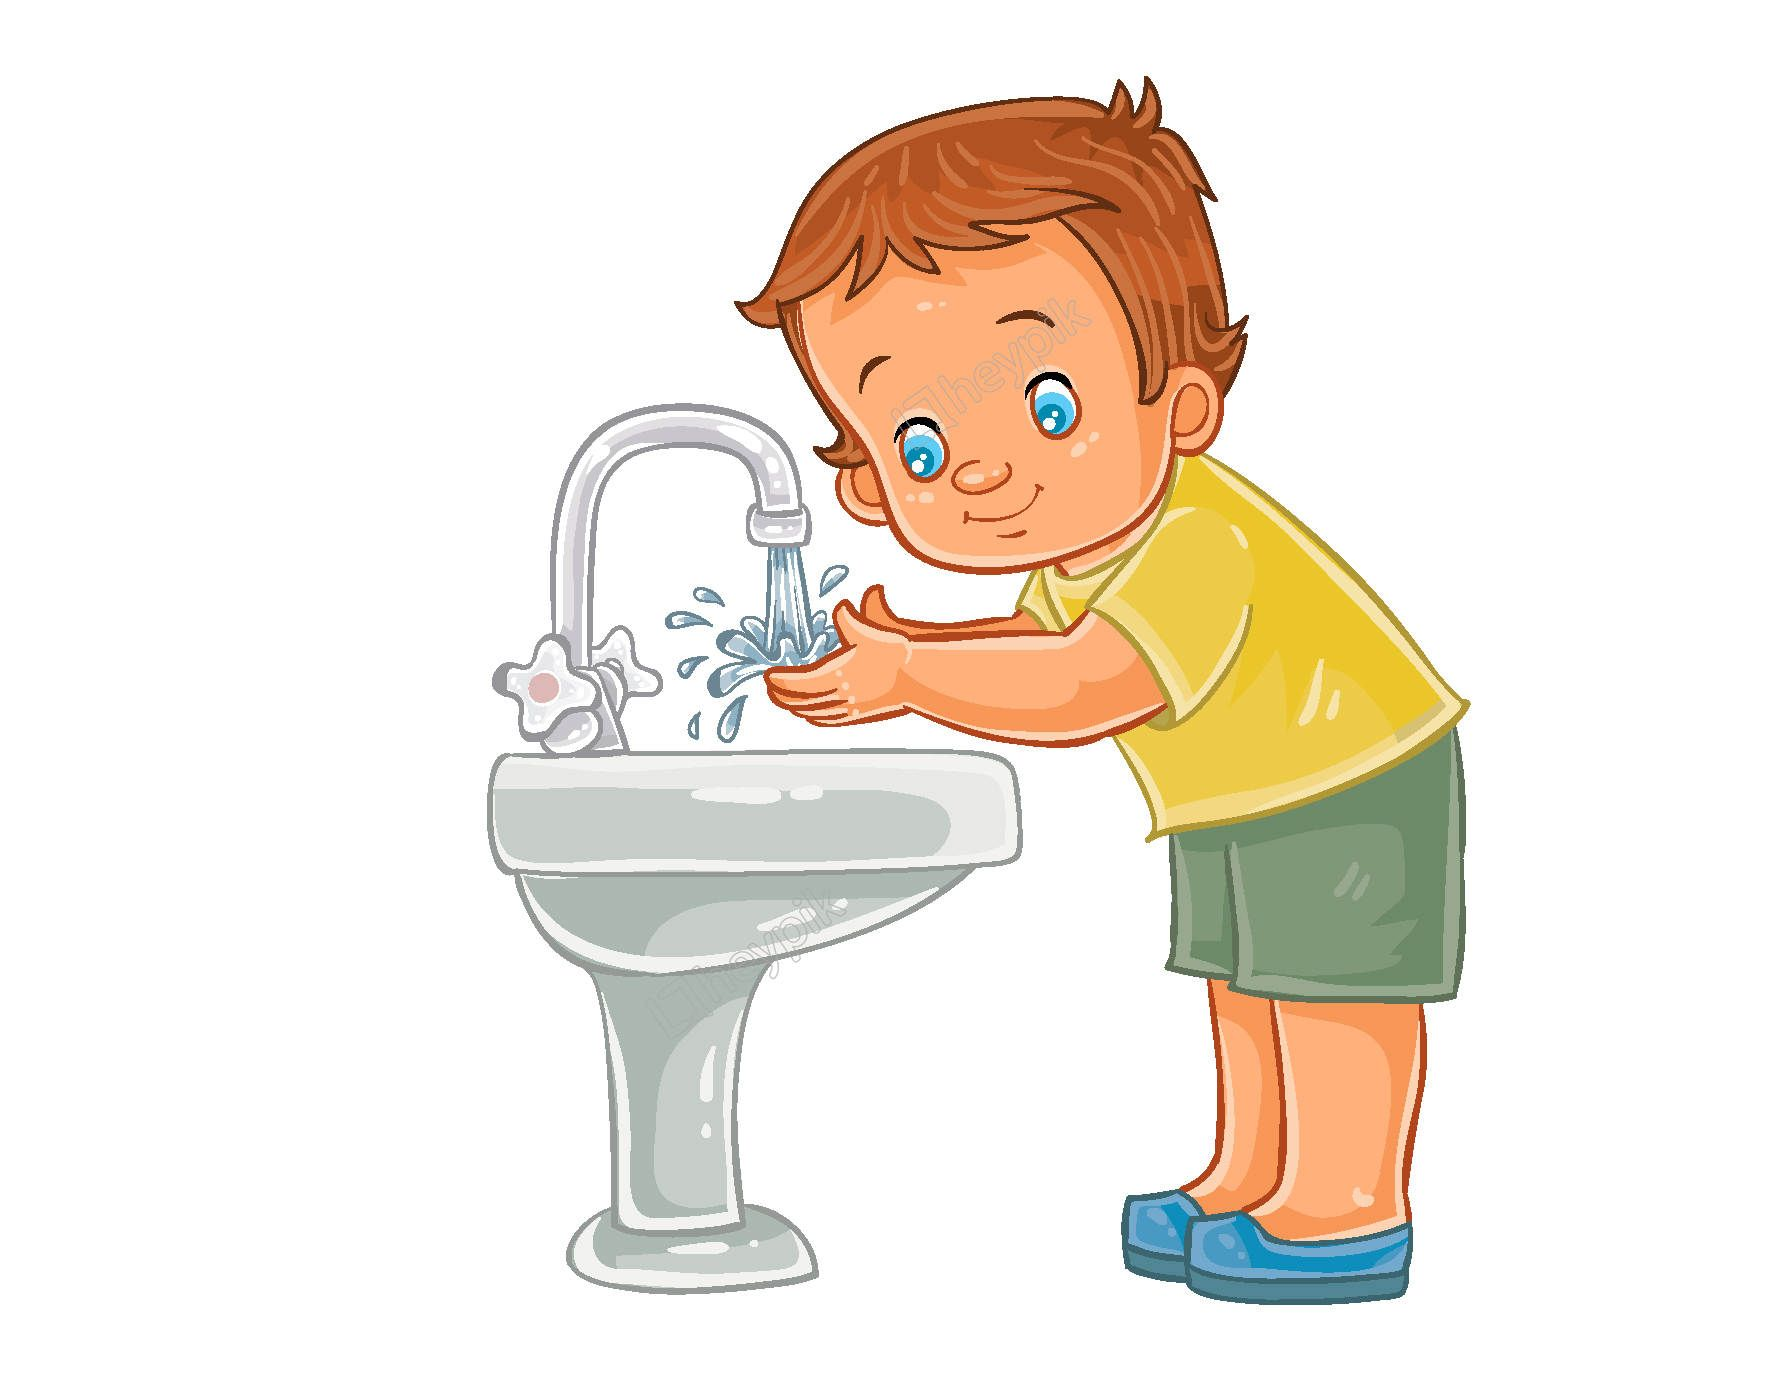 Hand Draw Cartoon Characters Wash Their Hands Hygiene Png Vector How To Draw Hands Cartoon Pics Hand Illustration